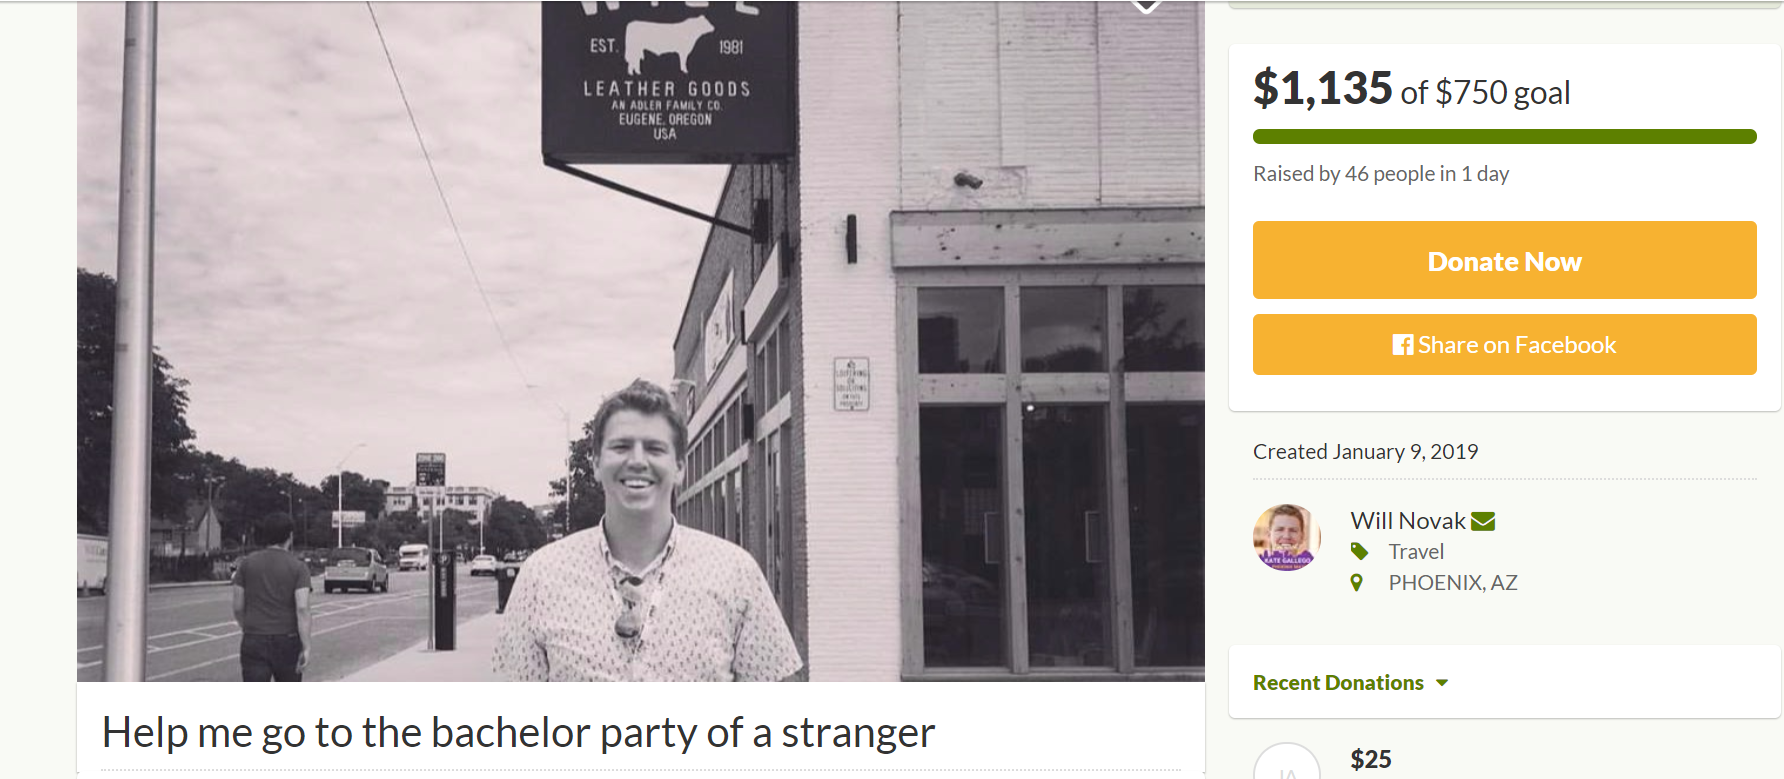 He was accidentally invited to a stranger's bachelor party. Now, GoFundMe is helping him attend